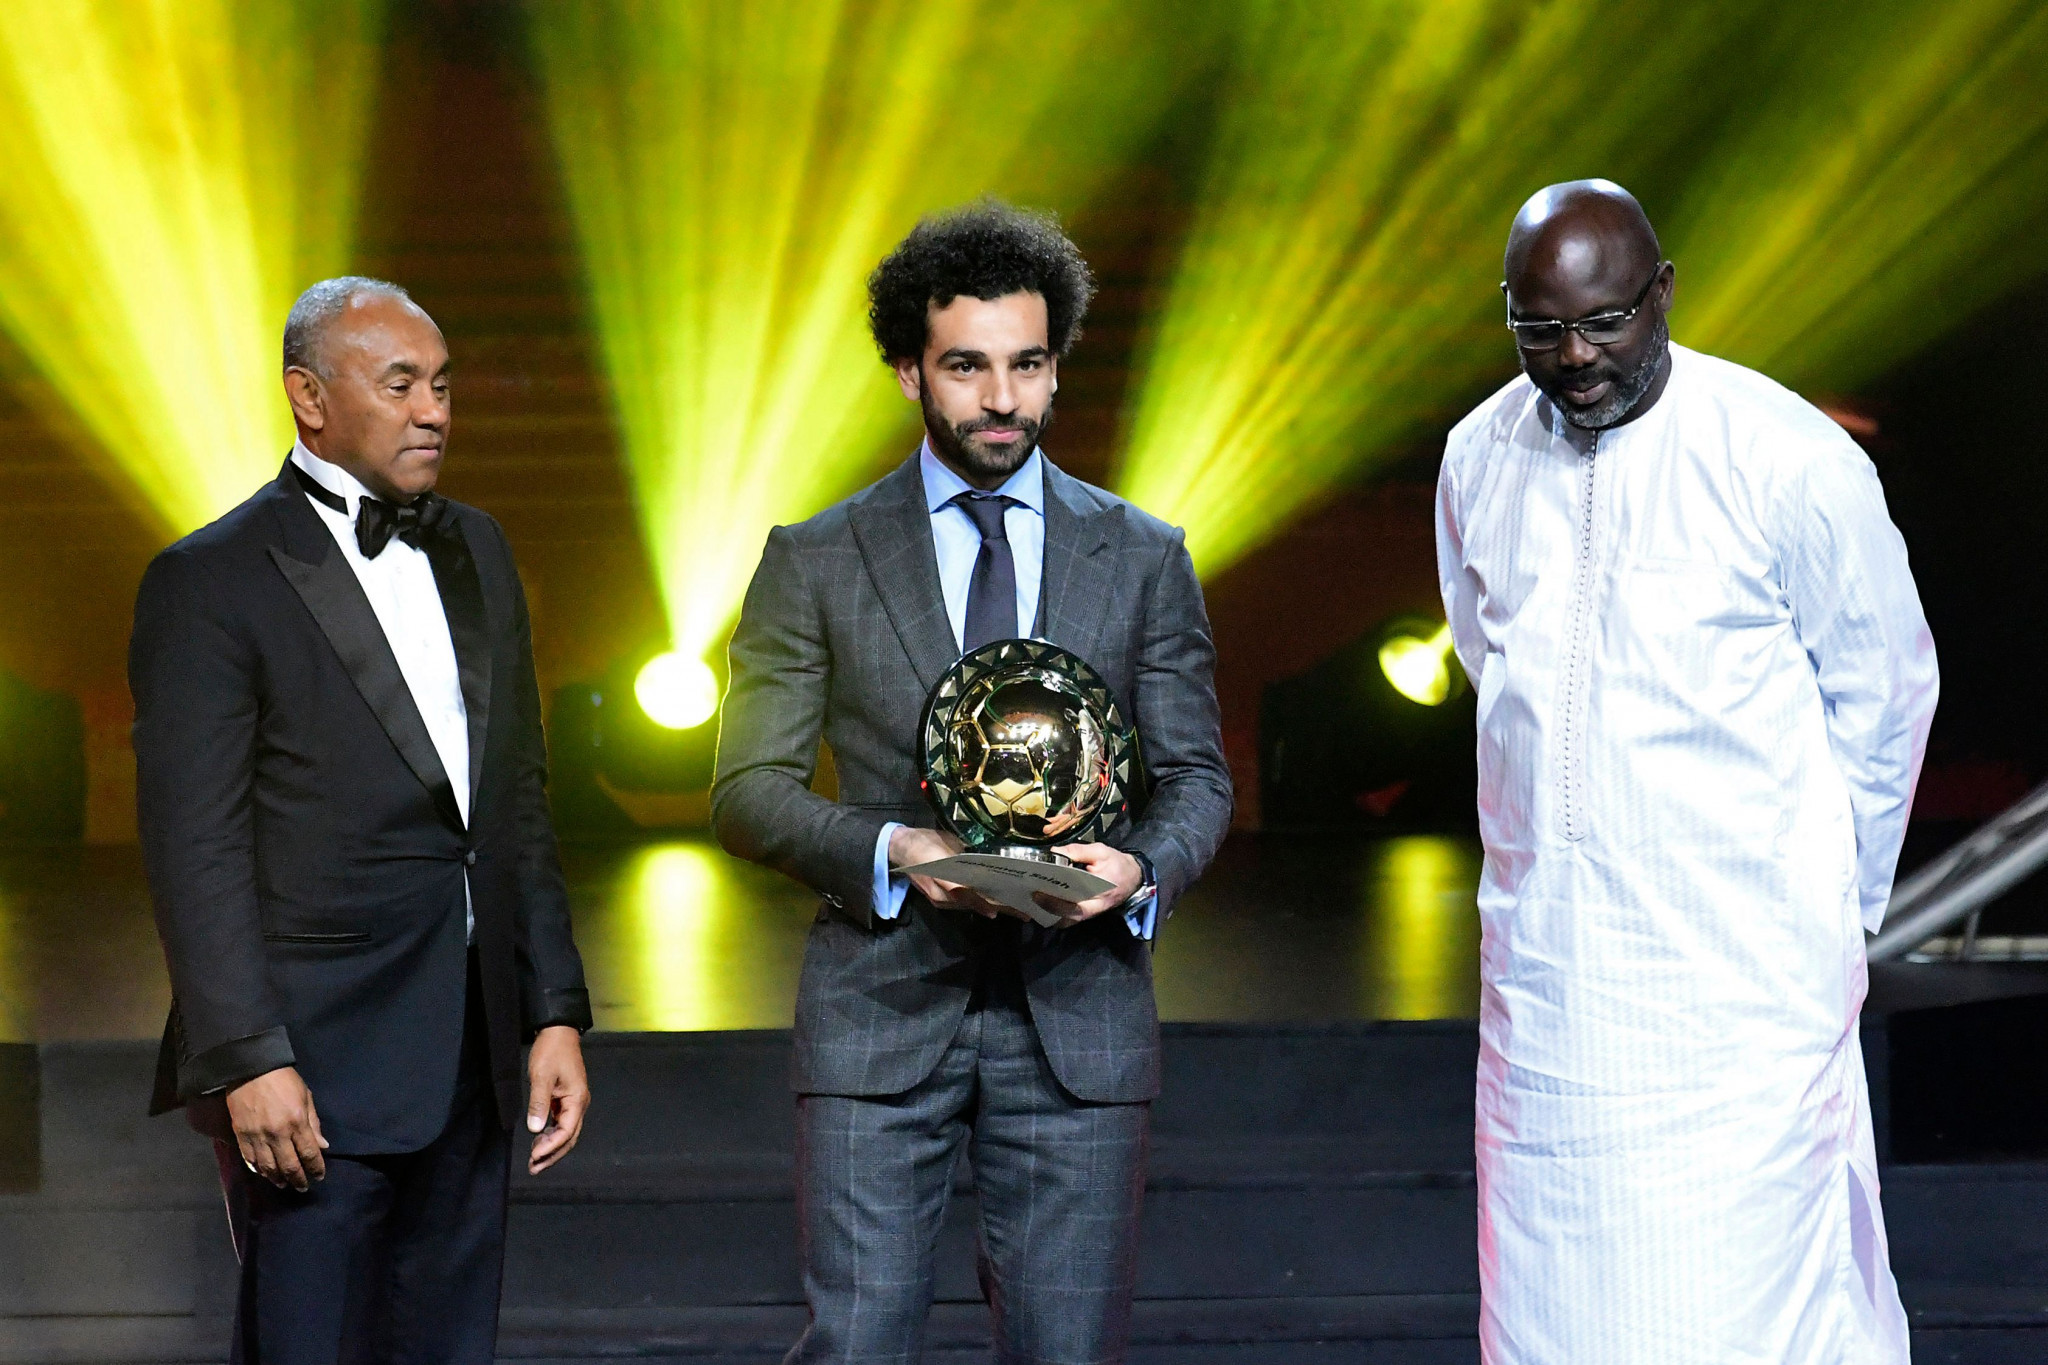 Liverpool forward Salah named African Footballer of the Year for second year running